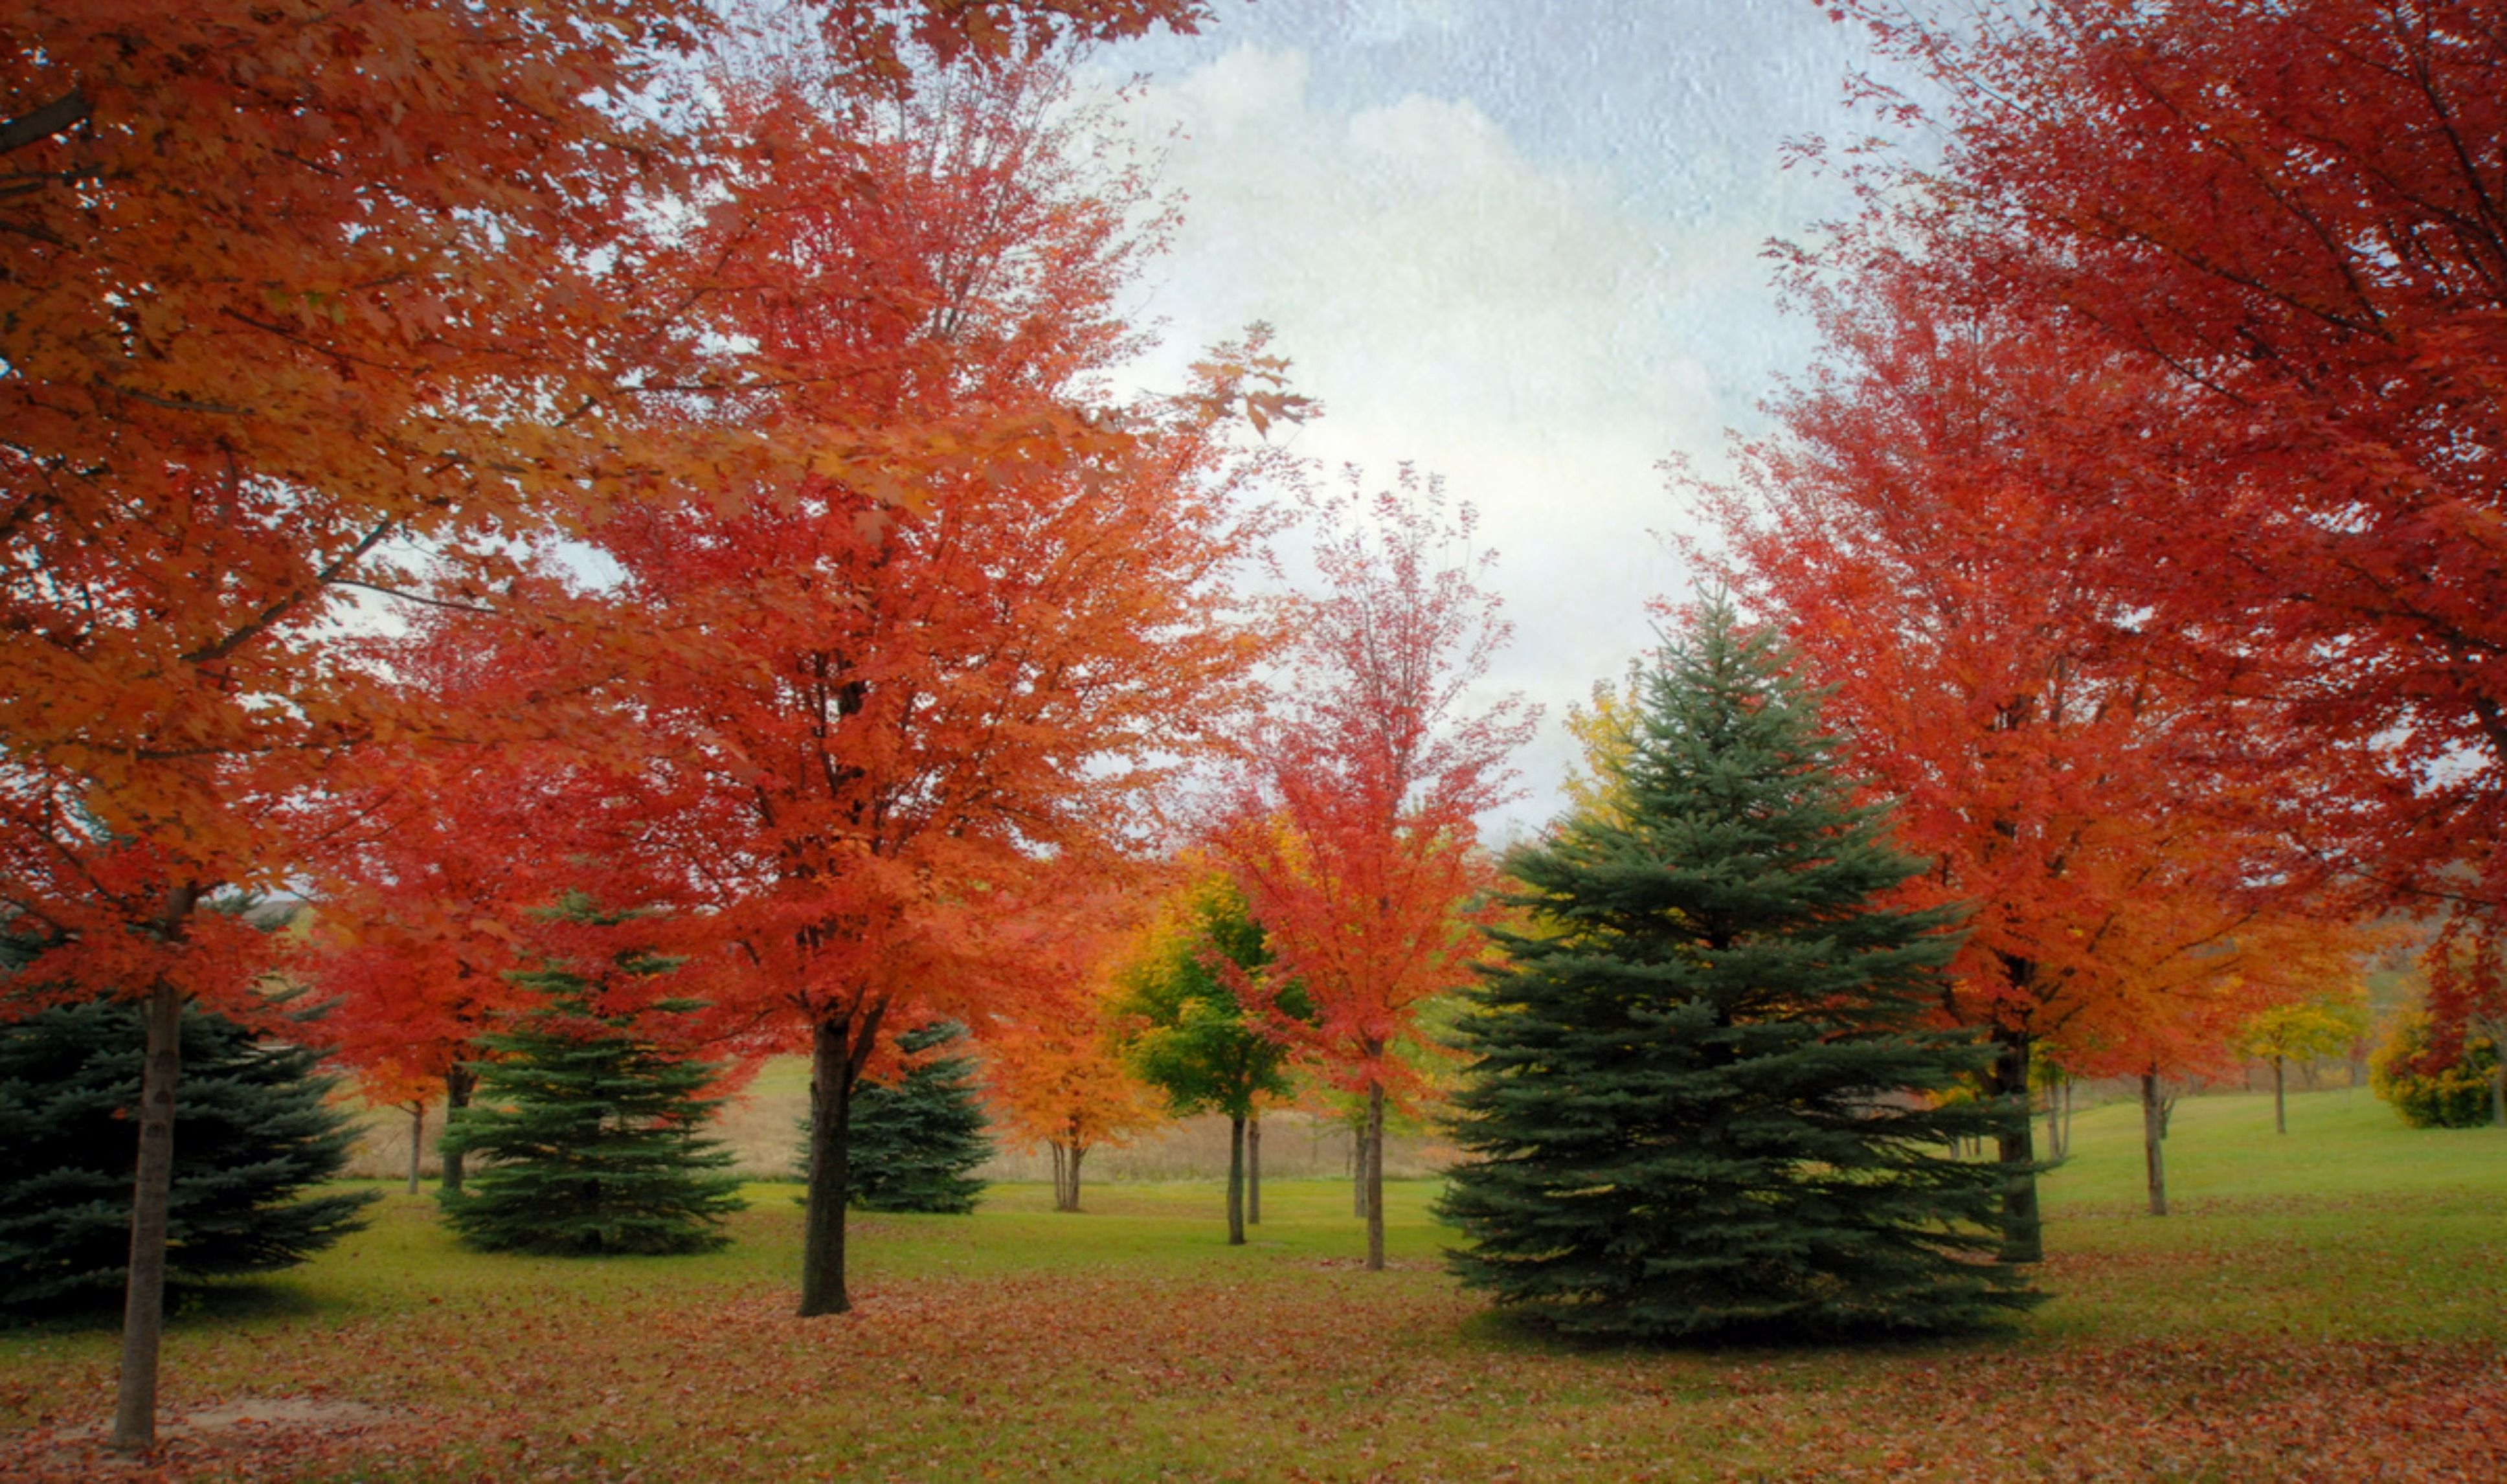 Fall trees with reds and oranges